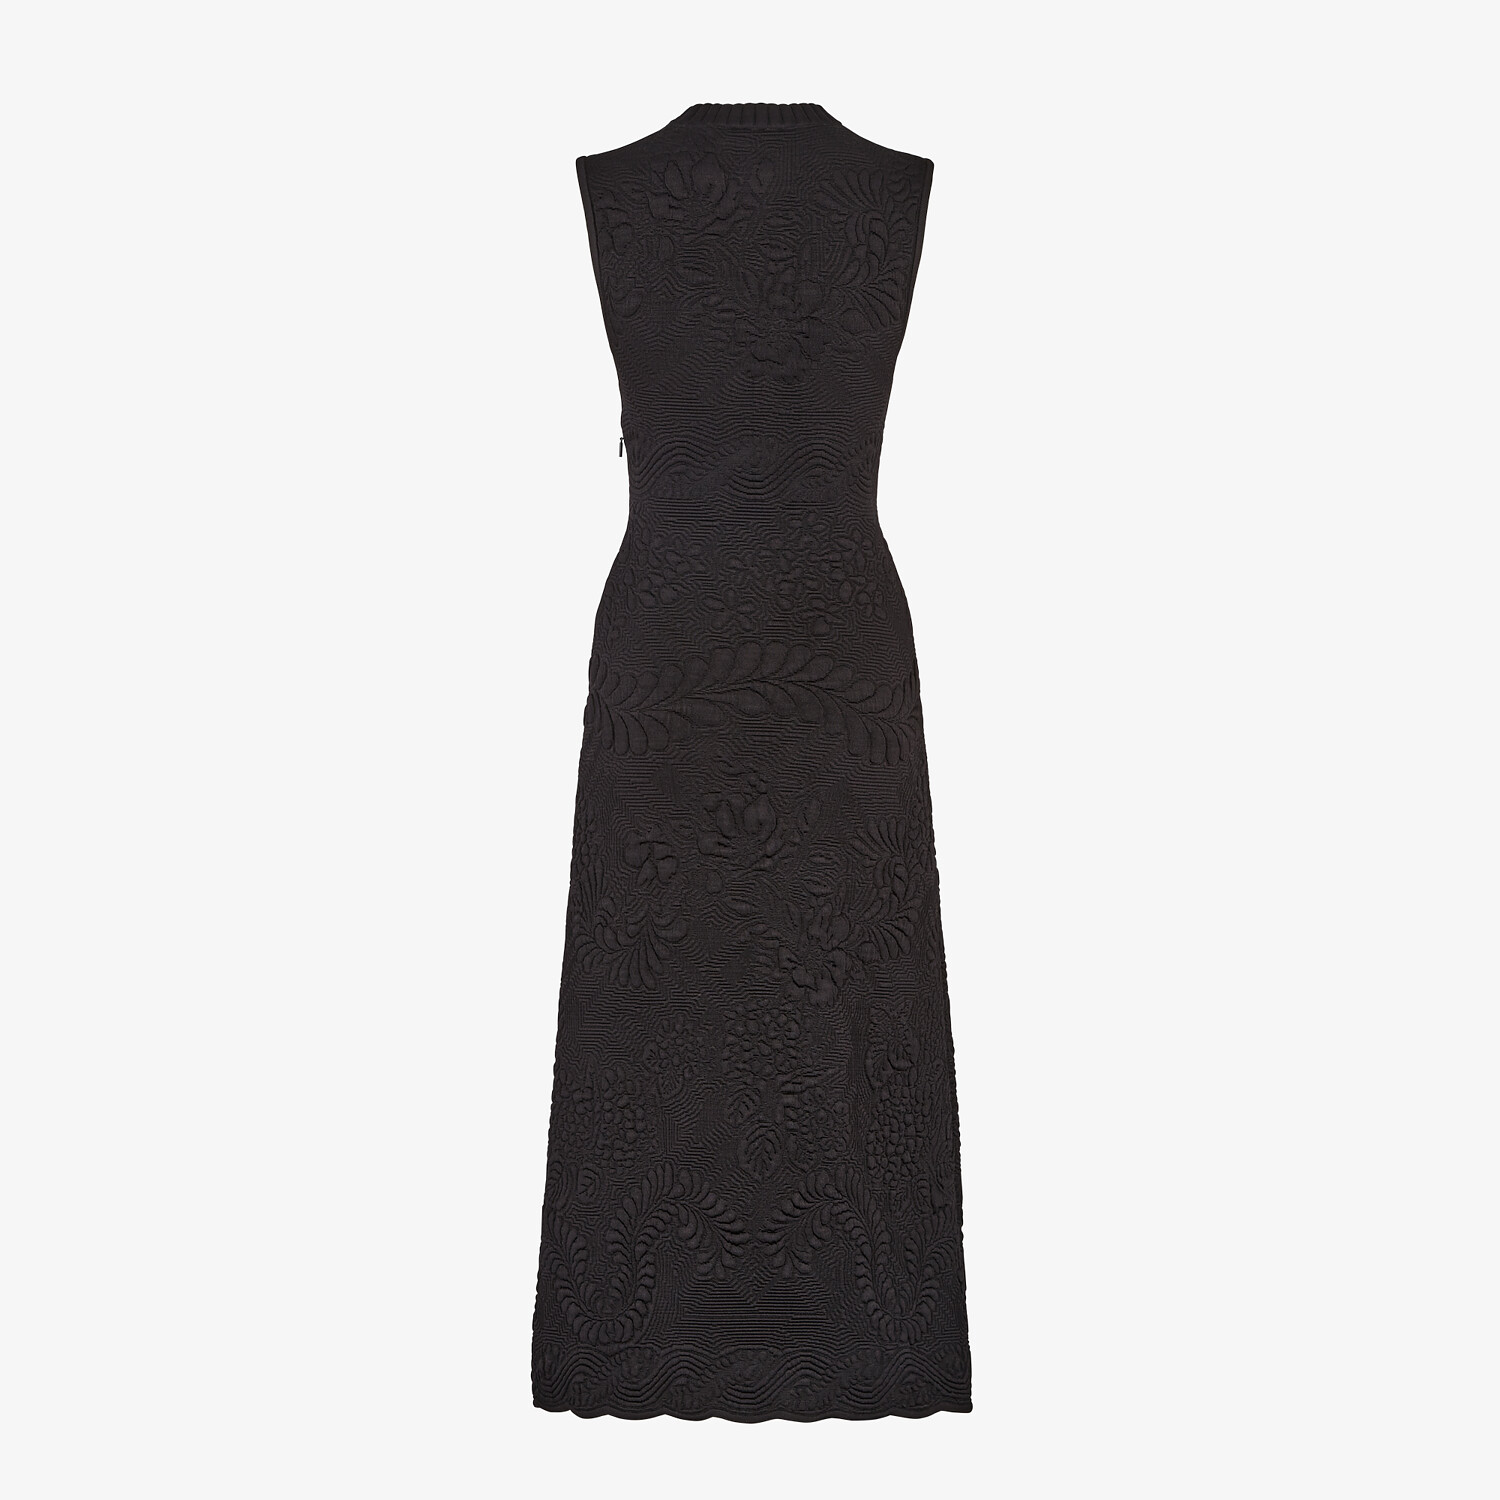 FENDI DRESS - Black viscose dress - view 2 detail